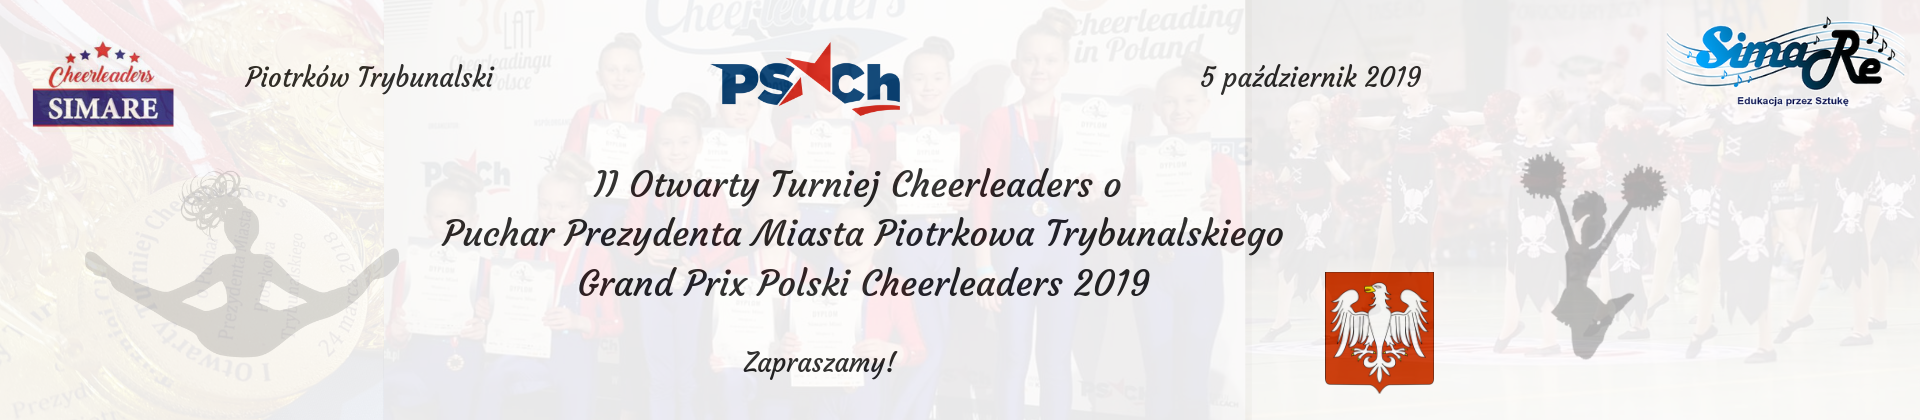 Kopia Grand Prix Polski Cheerleaders 2018